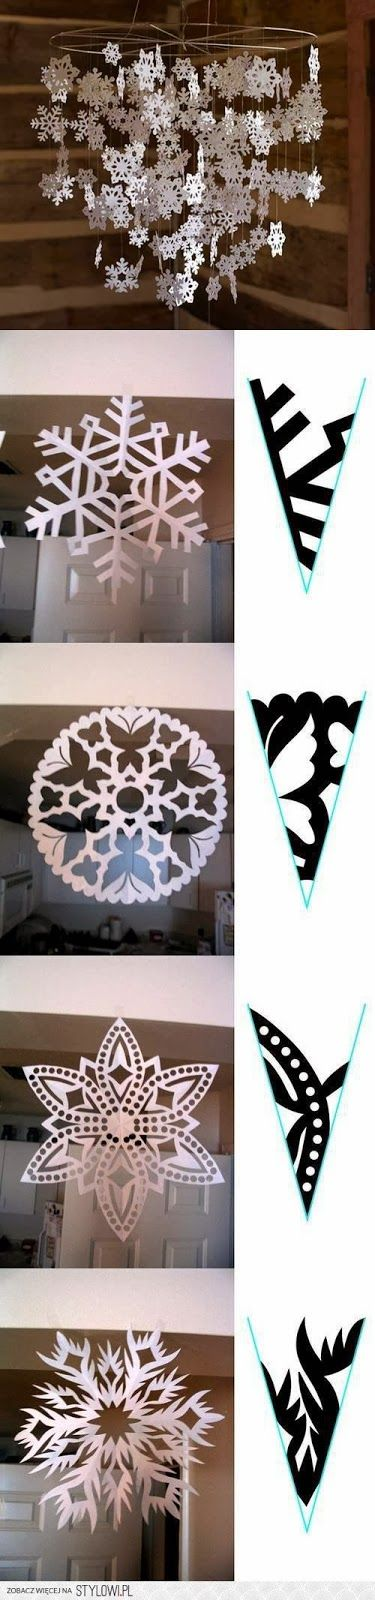 Ideas for The Enchanted Christmas - 271 images DIY, decoration and ornaments!Snowflake chandelier.